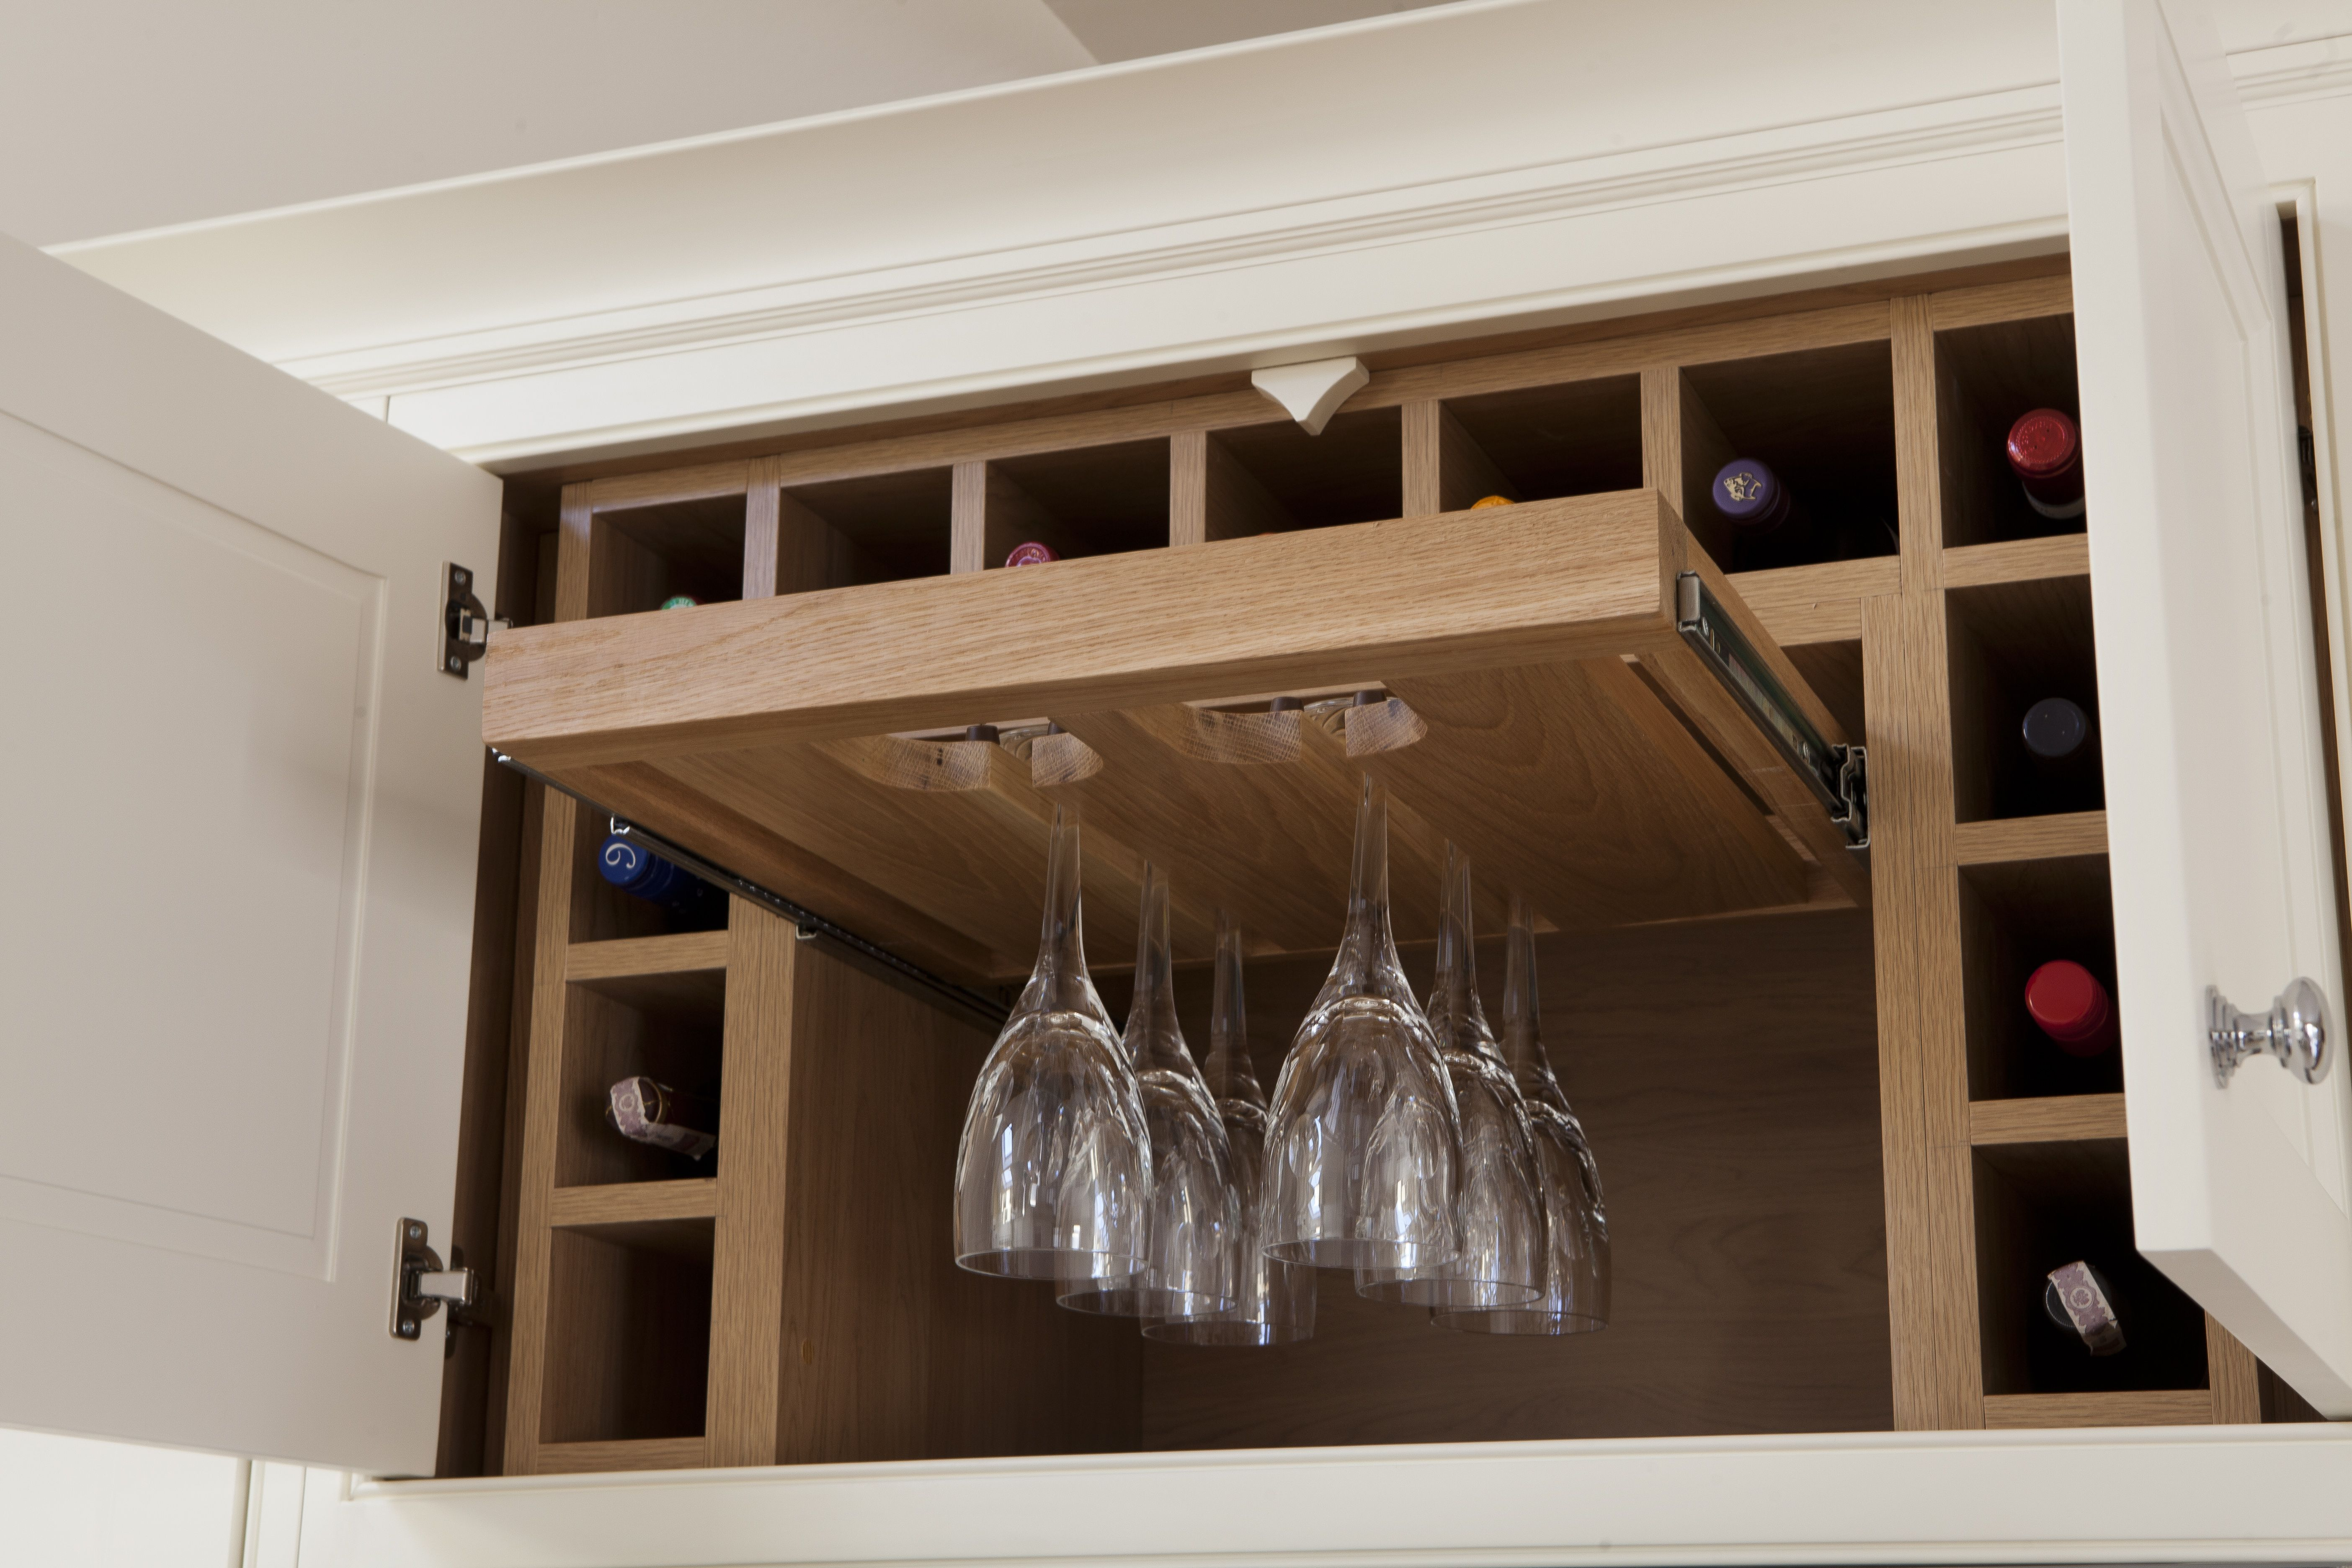 Wine Racks And Wine Bottle Storage For The Kitchen Pull Out Wine Glass Holder With G Wine Theme Kitchen Living Room And Kitchen Colours Custom Kitchens Design